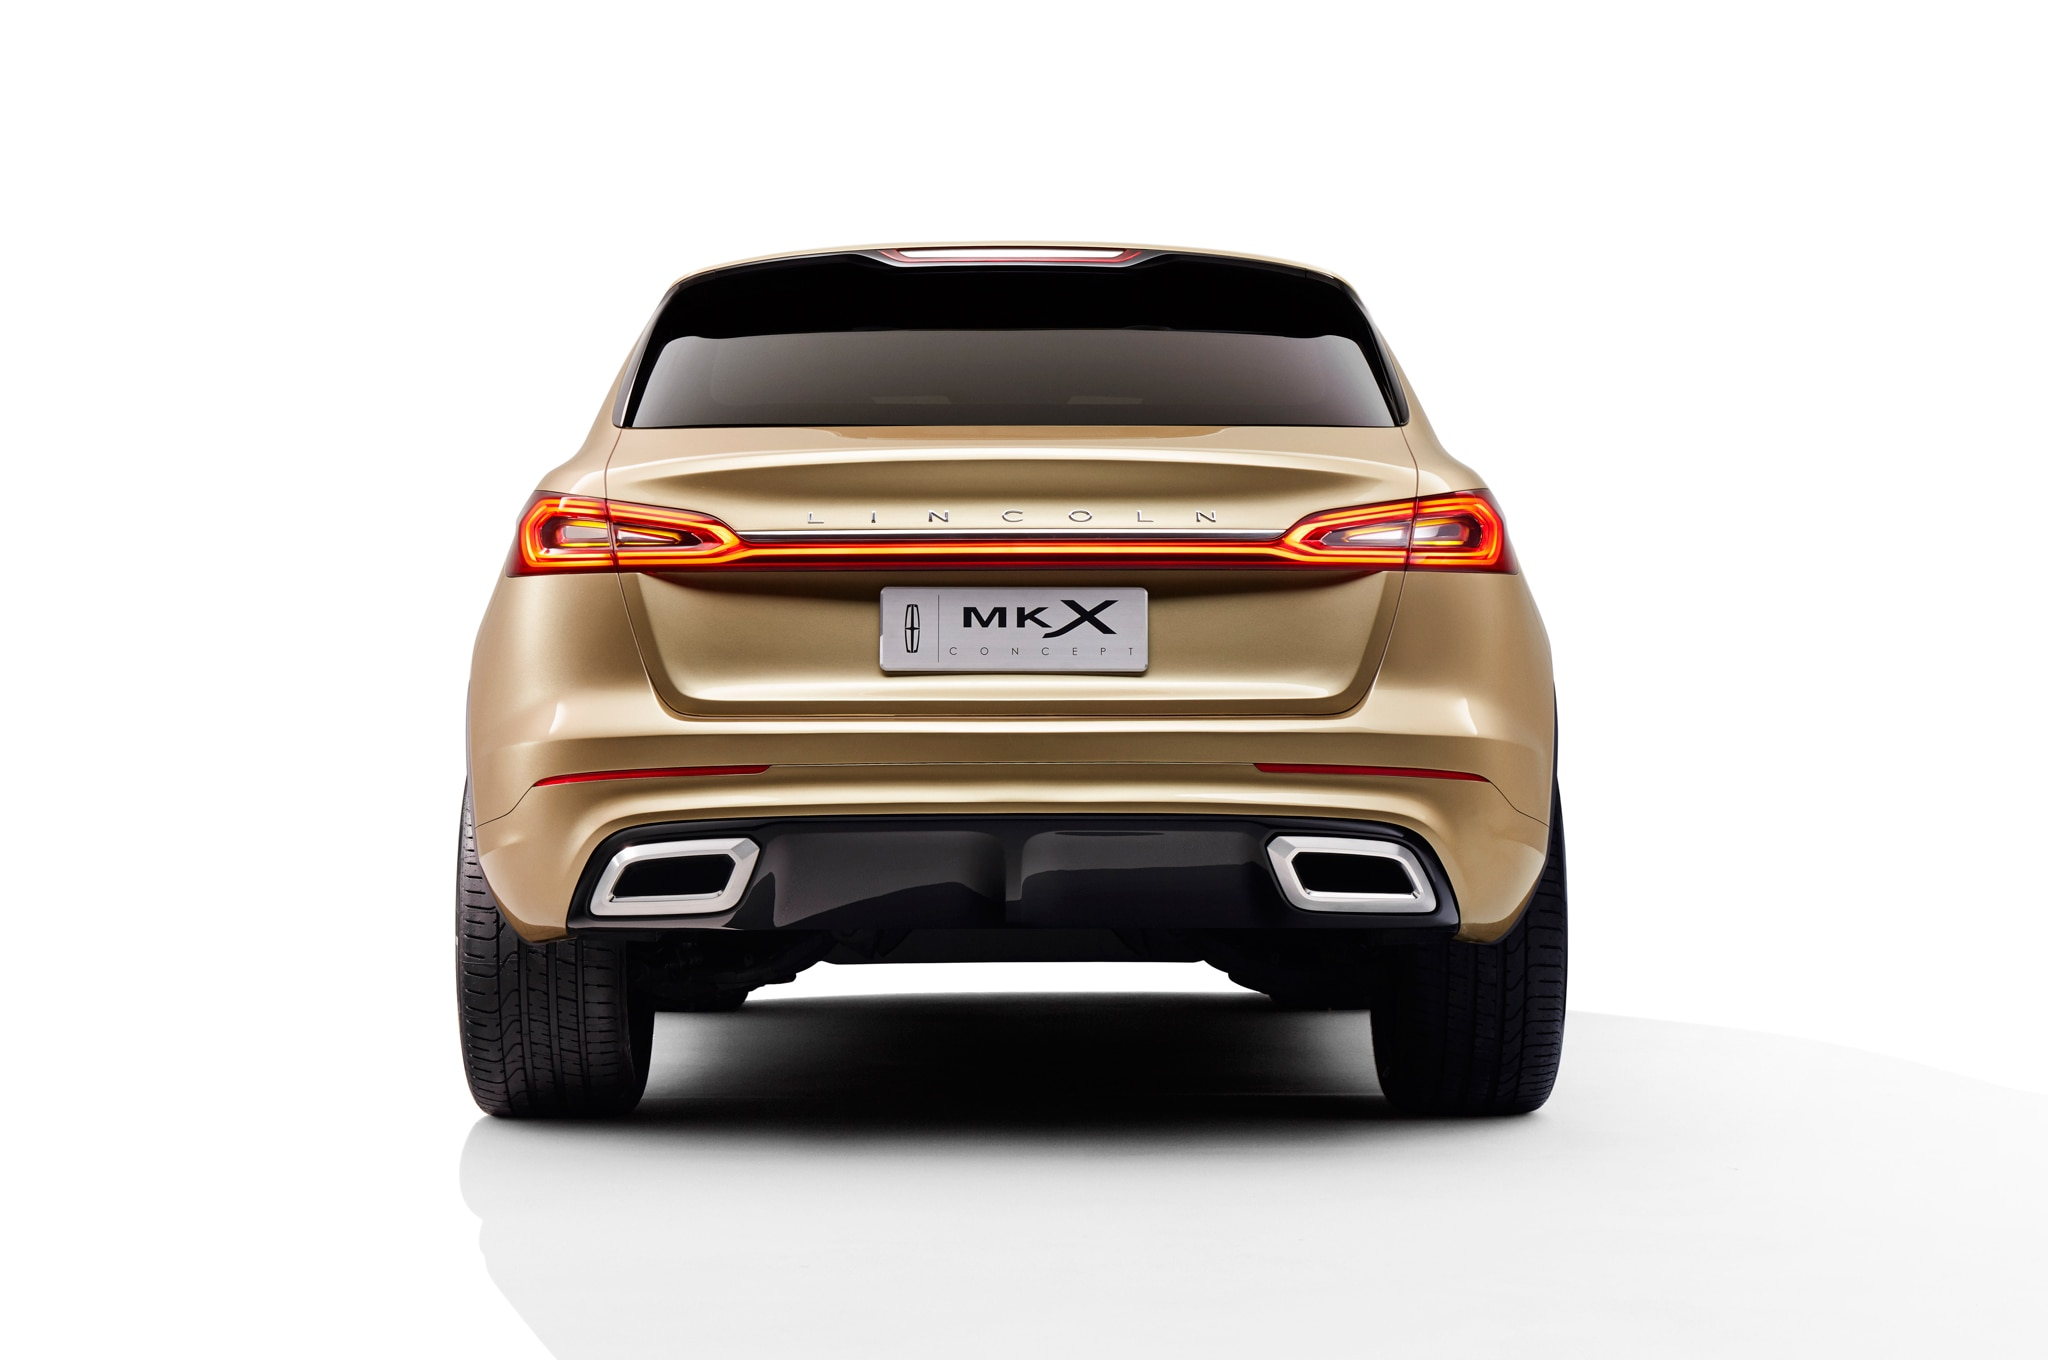 https://st.automobilemag.com/uploads/sites/11/2014/04/Lincoln-MKX-Concept-rear-end-02.jpg